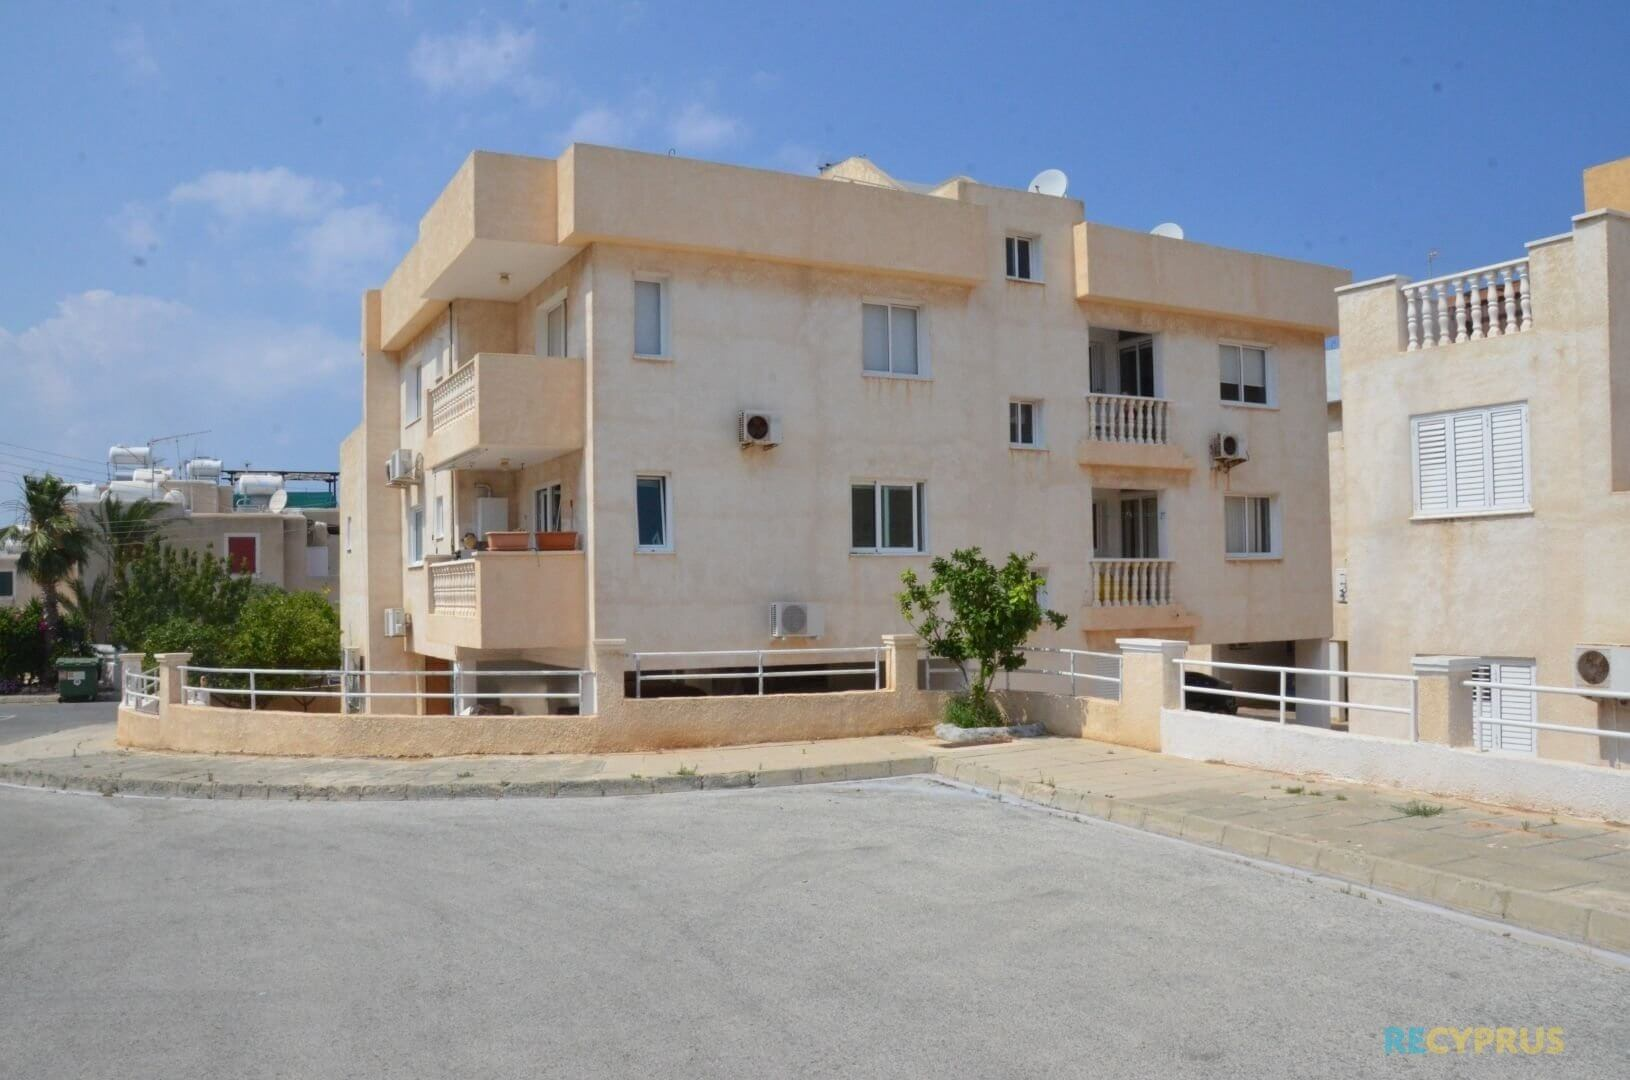 Apartment for sale Kapparis Famagusta Cyprus 1 3518